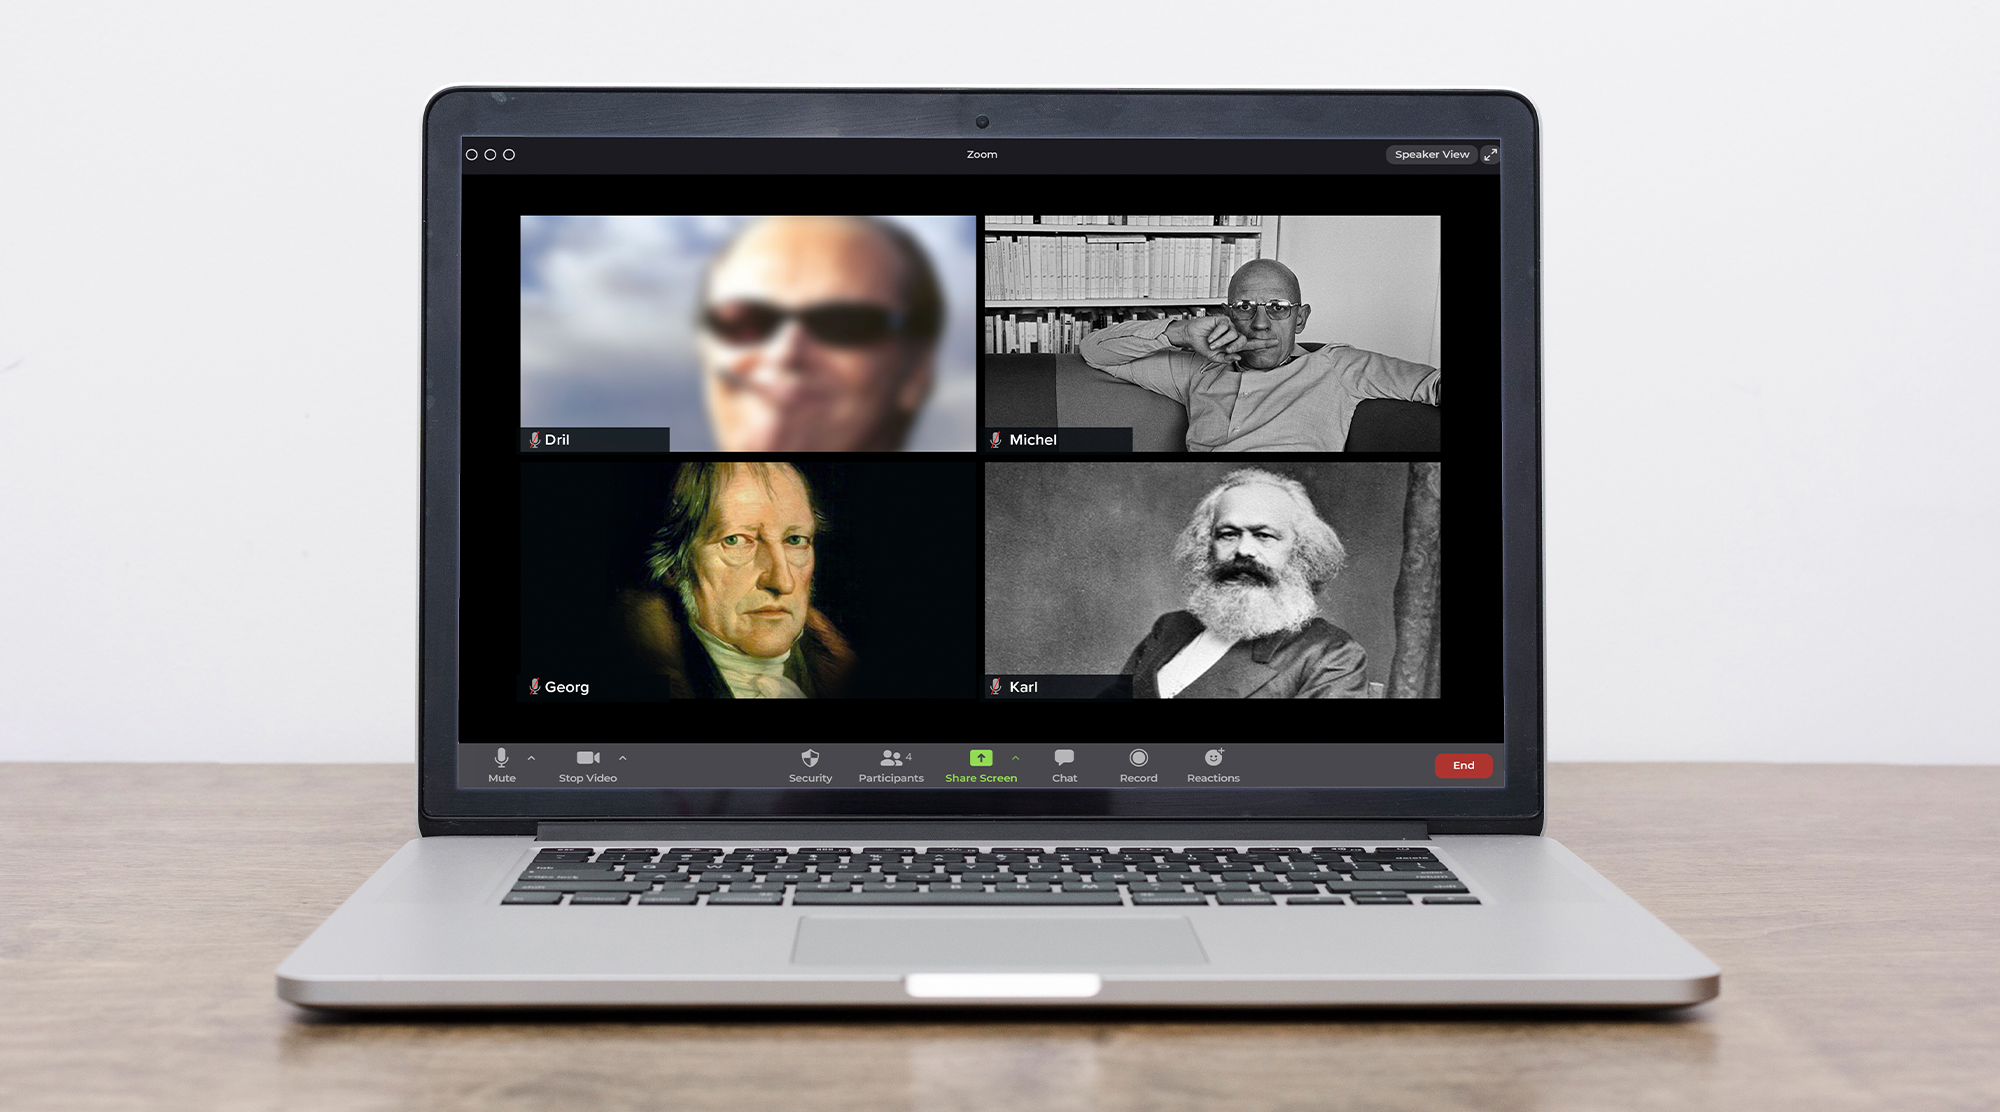 I Have Read Over 100,000 Posts: Teaching the Philosophy of the Internet